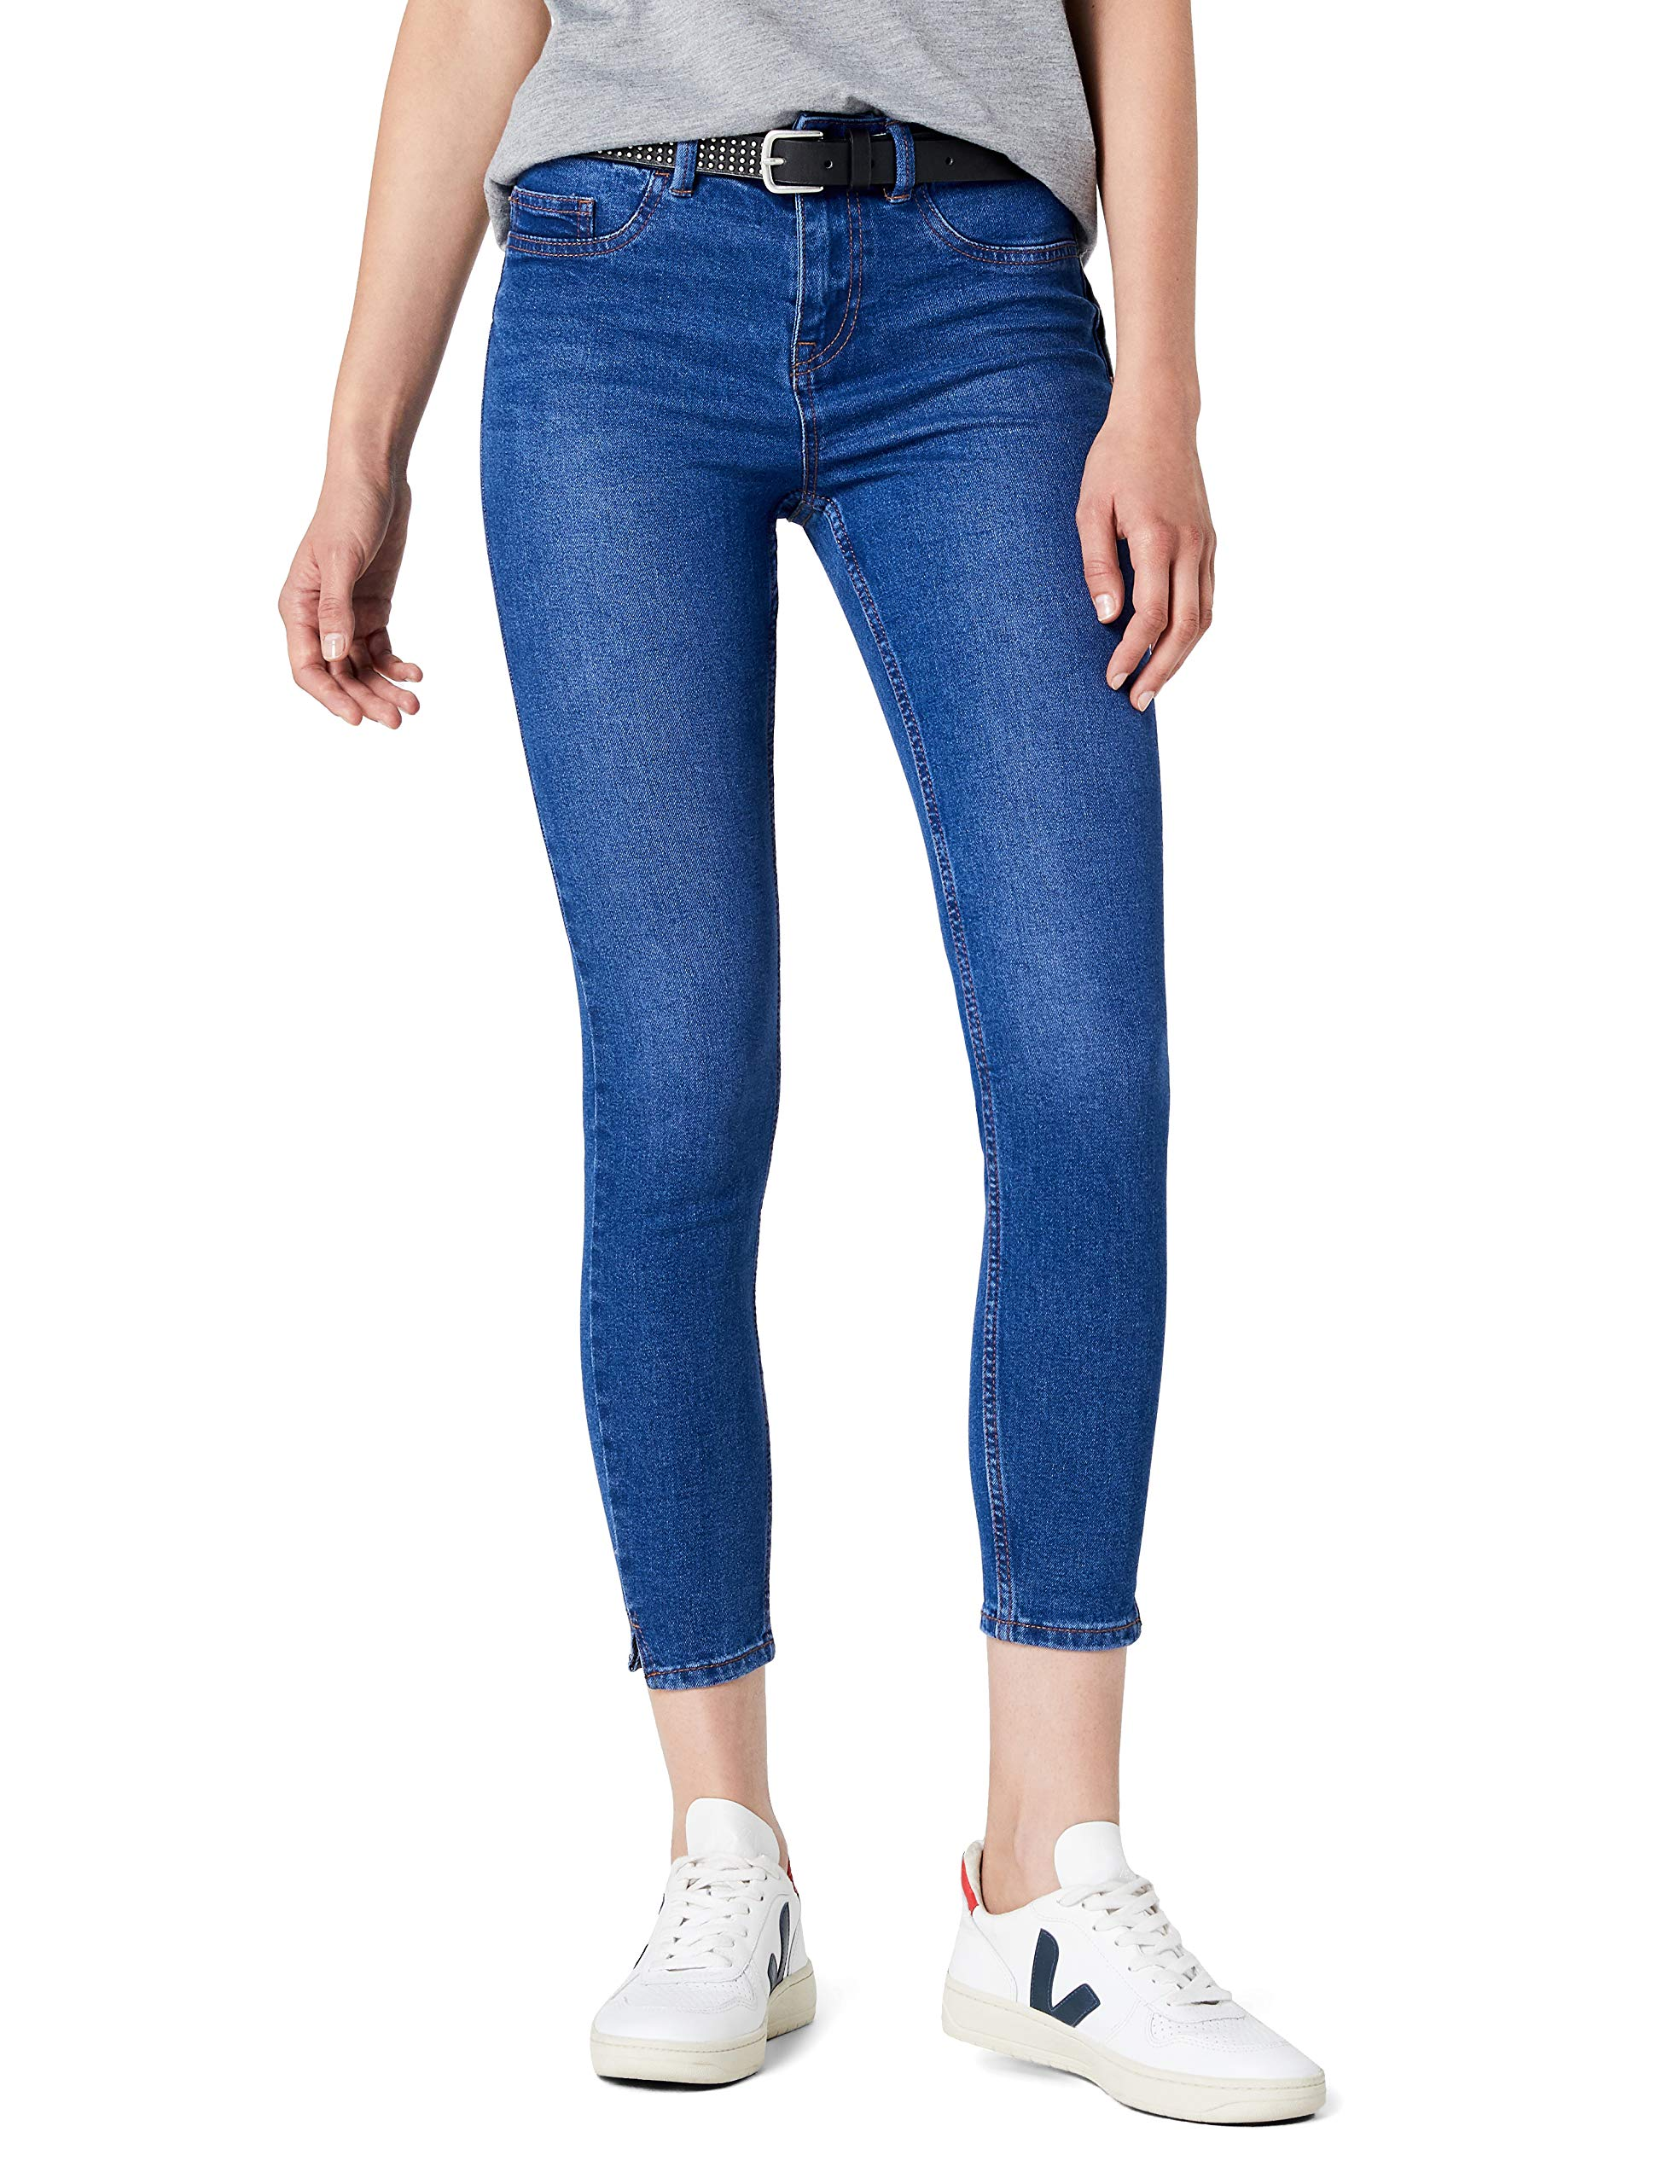 New Look Women's Skinny Jeans 31